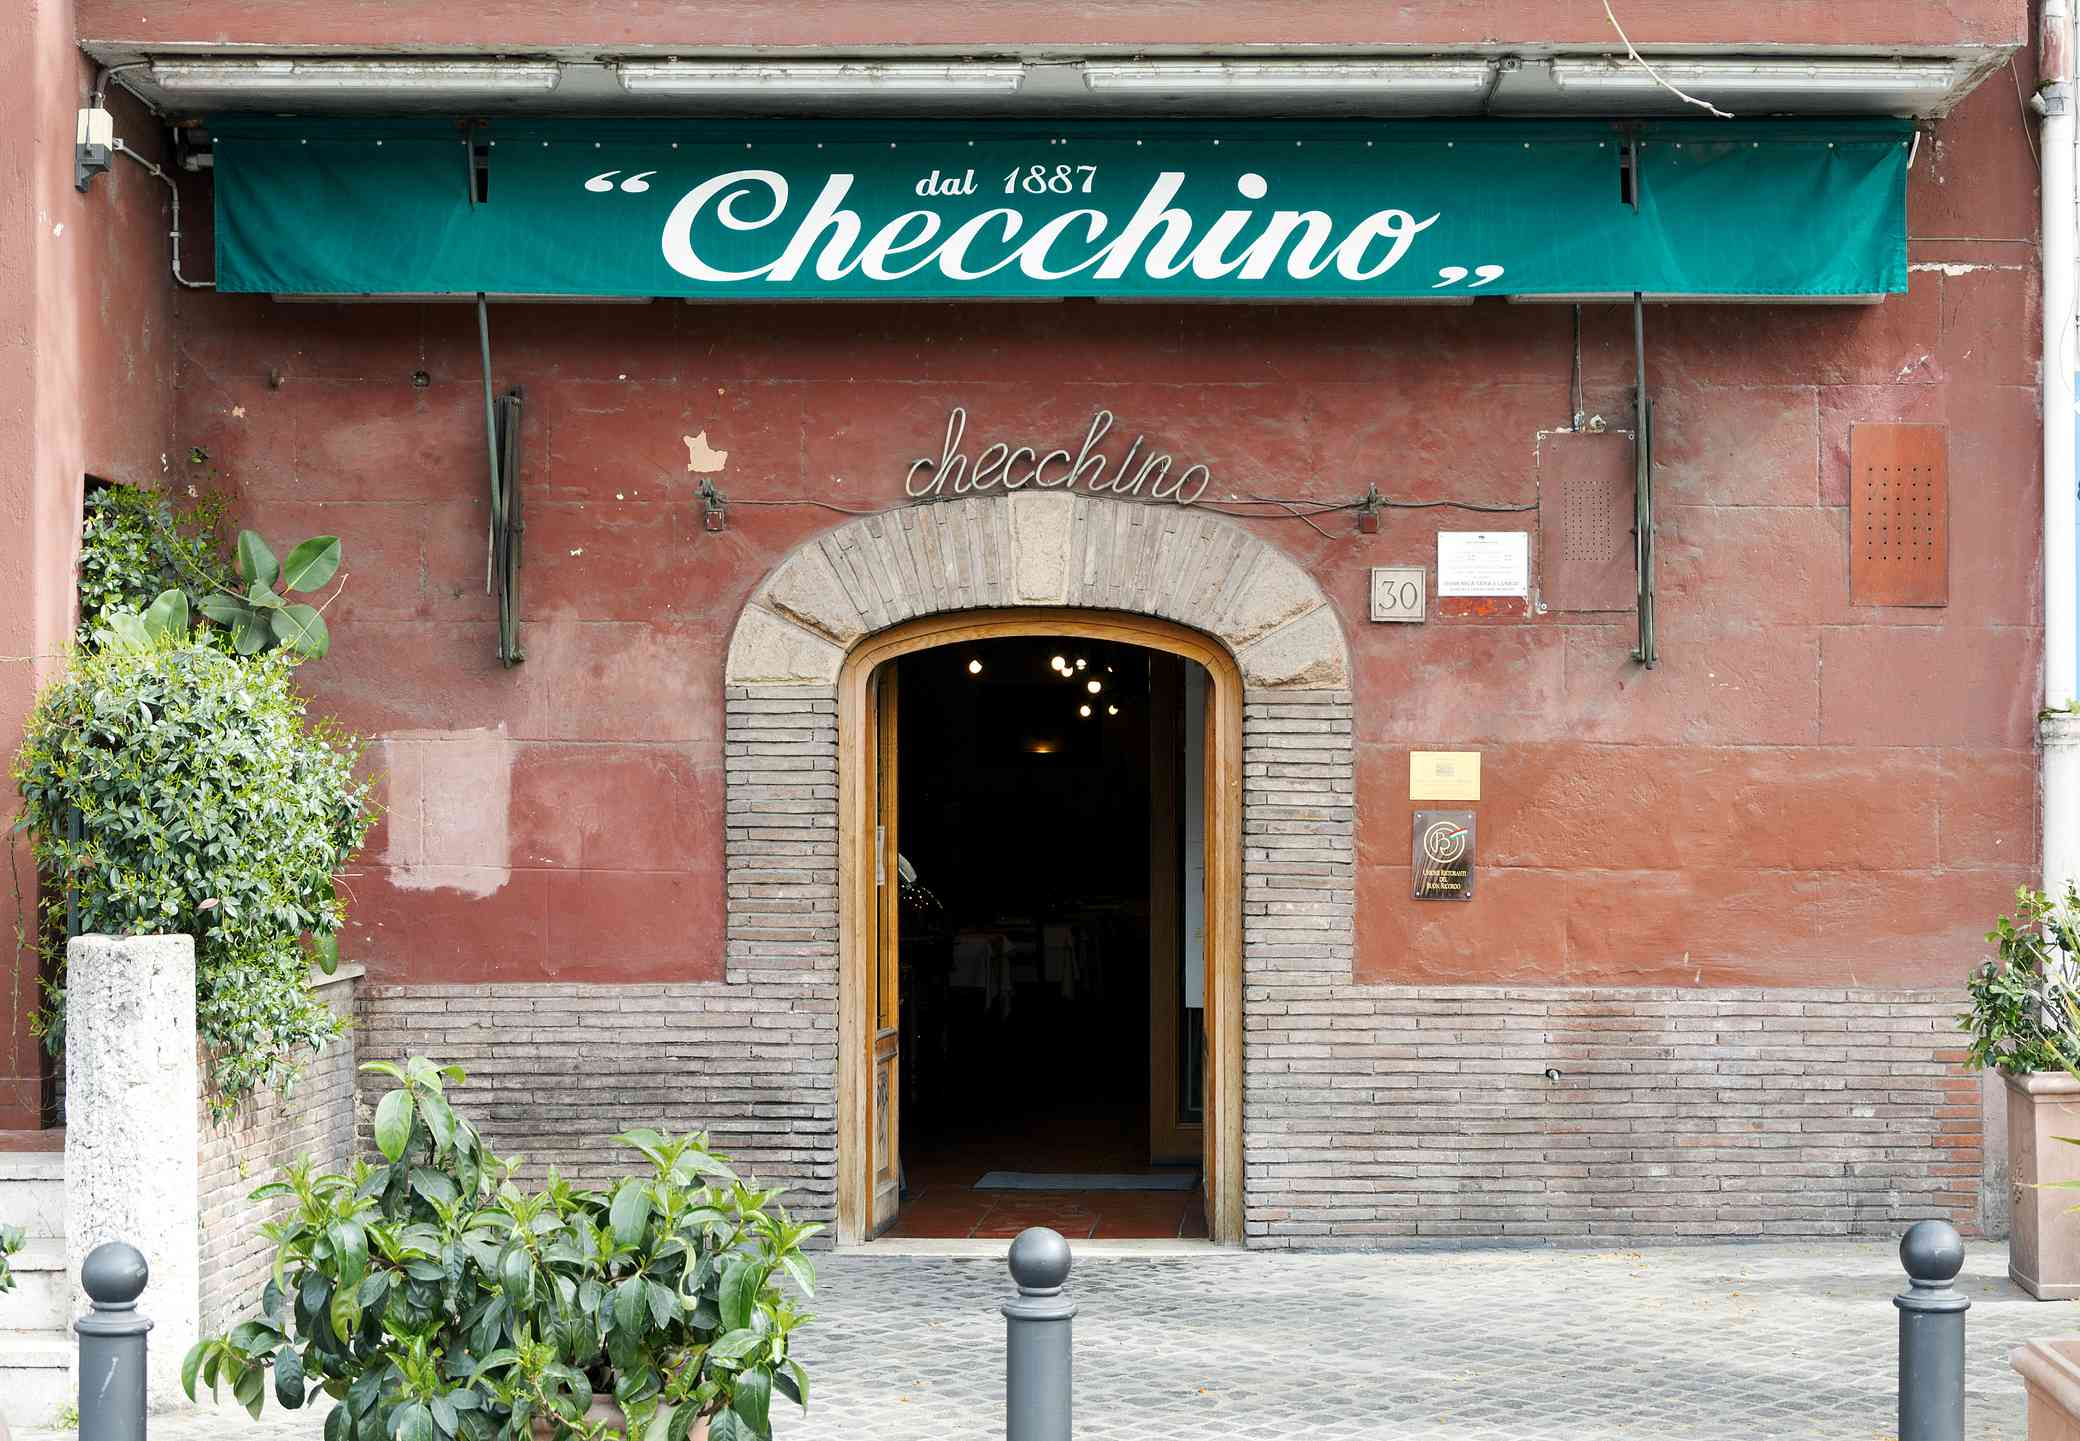 Exterior of the typical roman restaurant Checchino in Rome